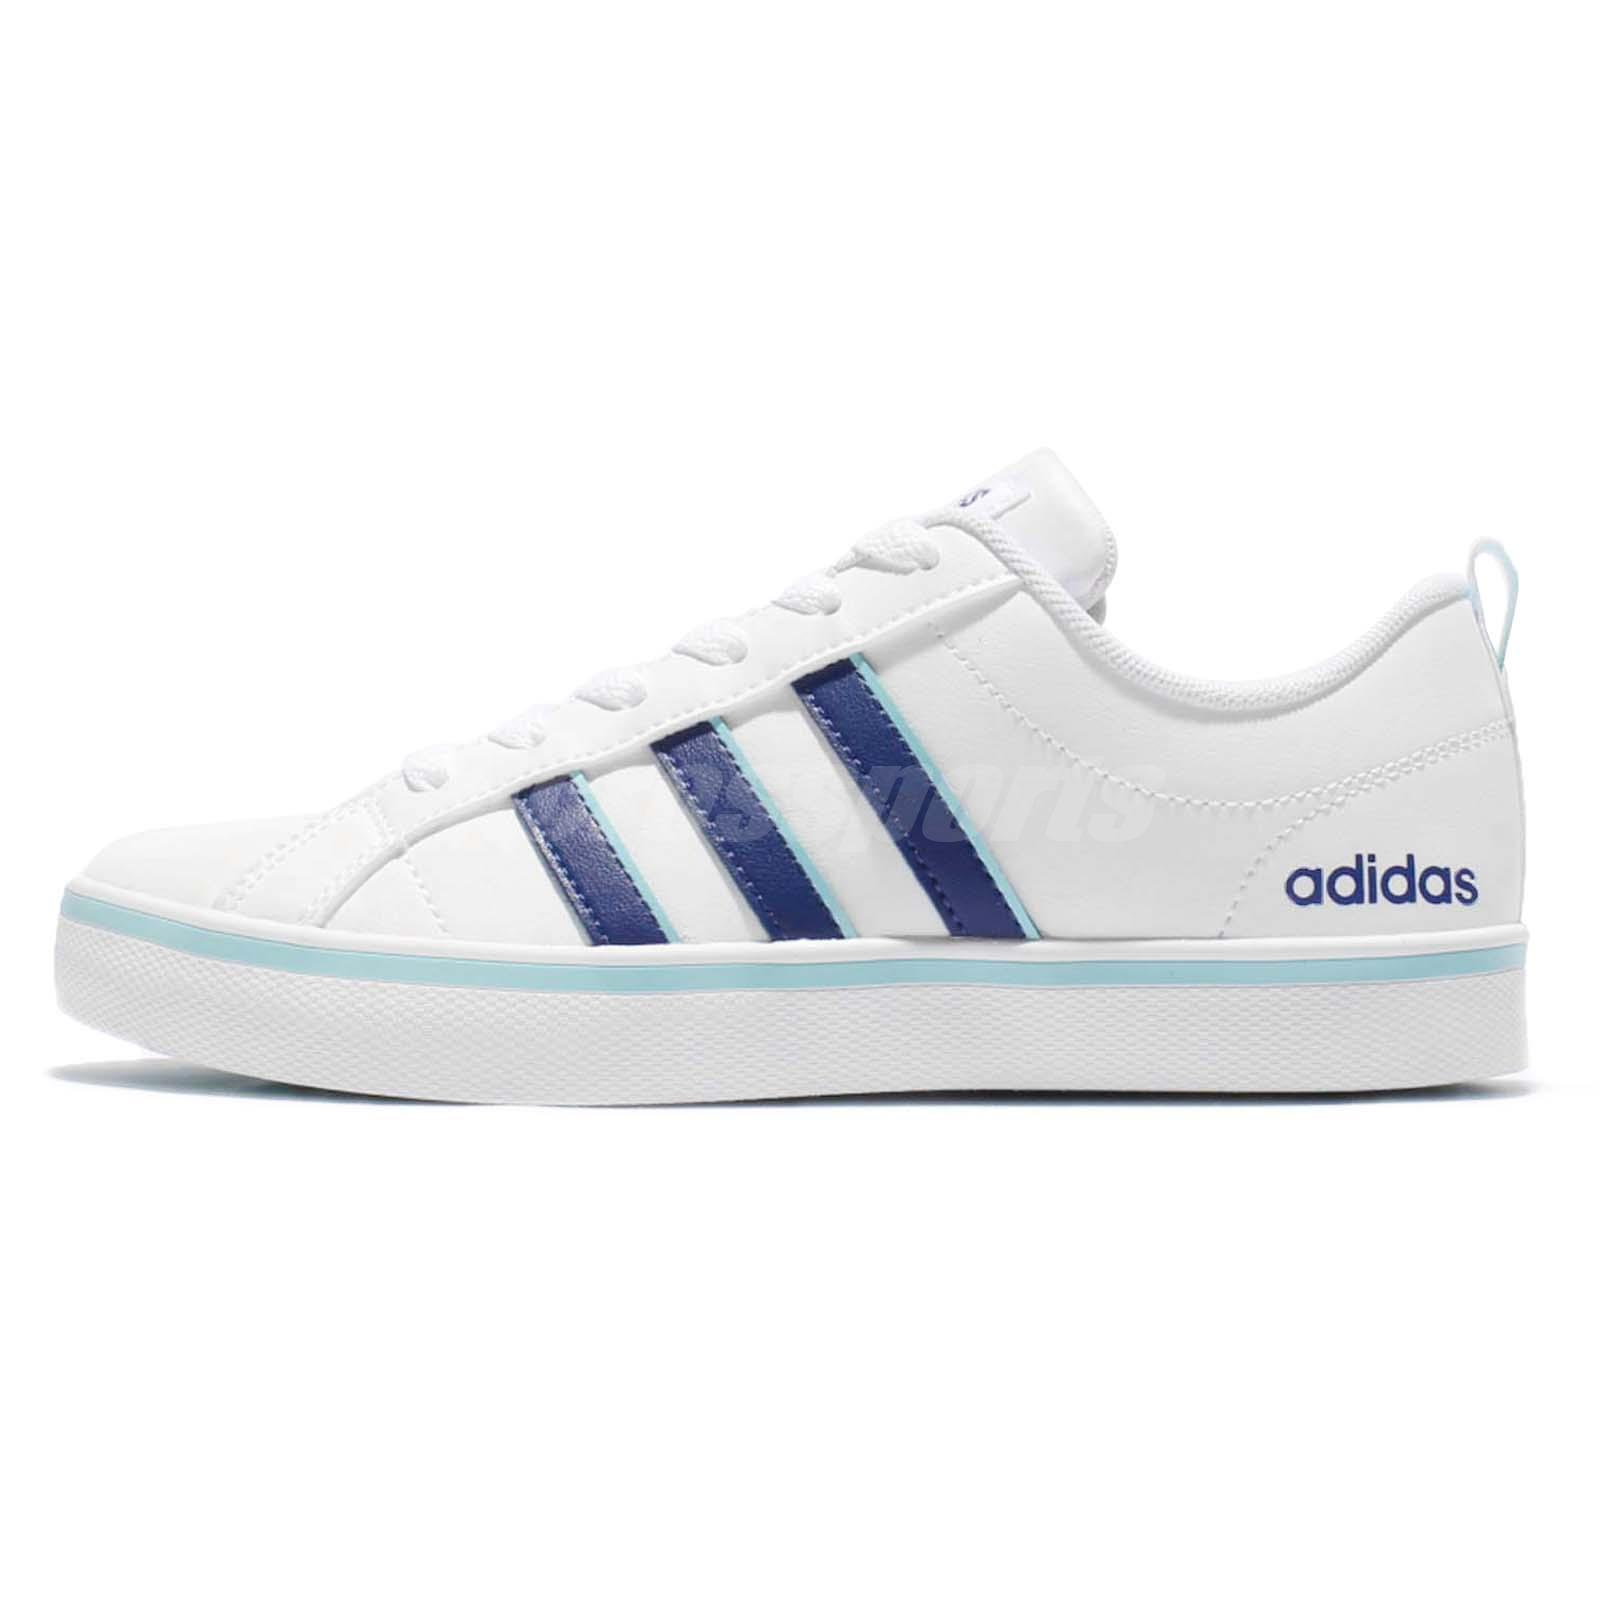 adidas neo label vs pace w white navy women shoes sneakers. Black Bedroom Furniture Sets. Home Design Ideas